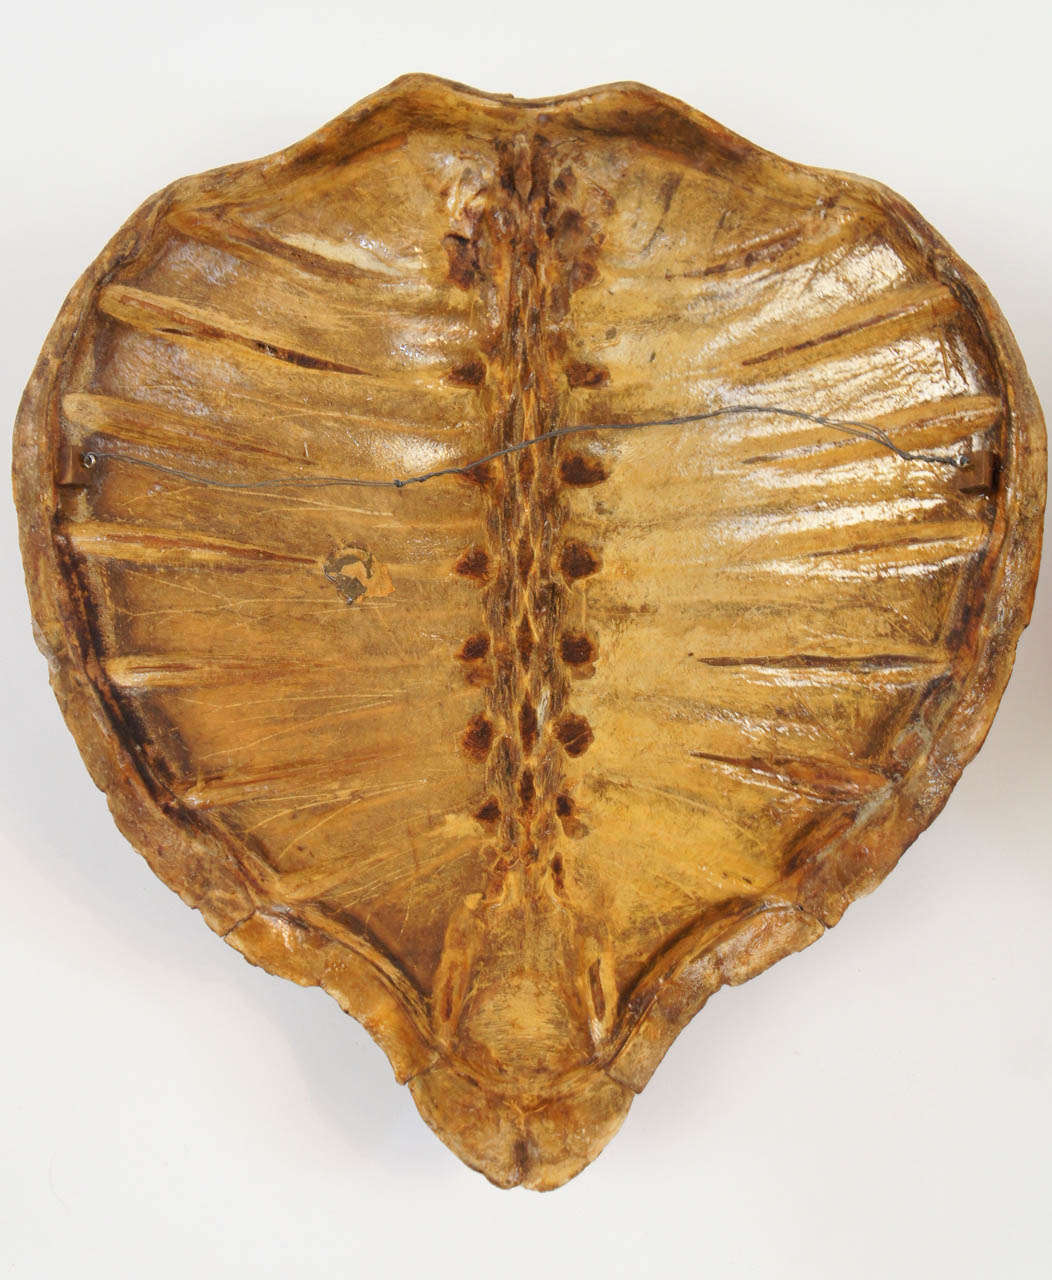 Two Large Marine Turtle Shells Or Carapaces 19th Century